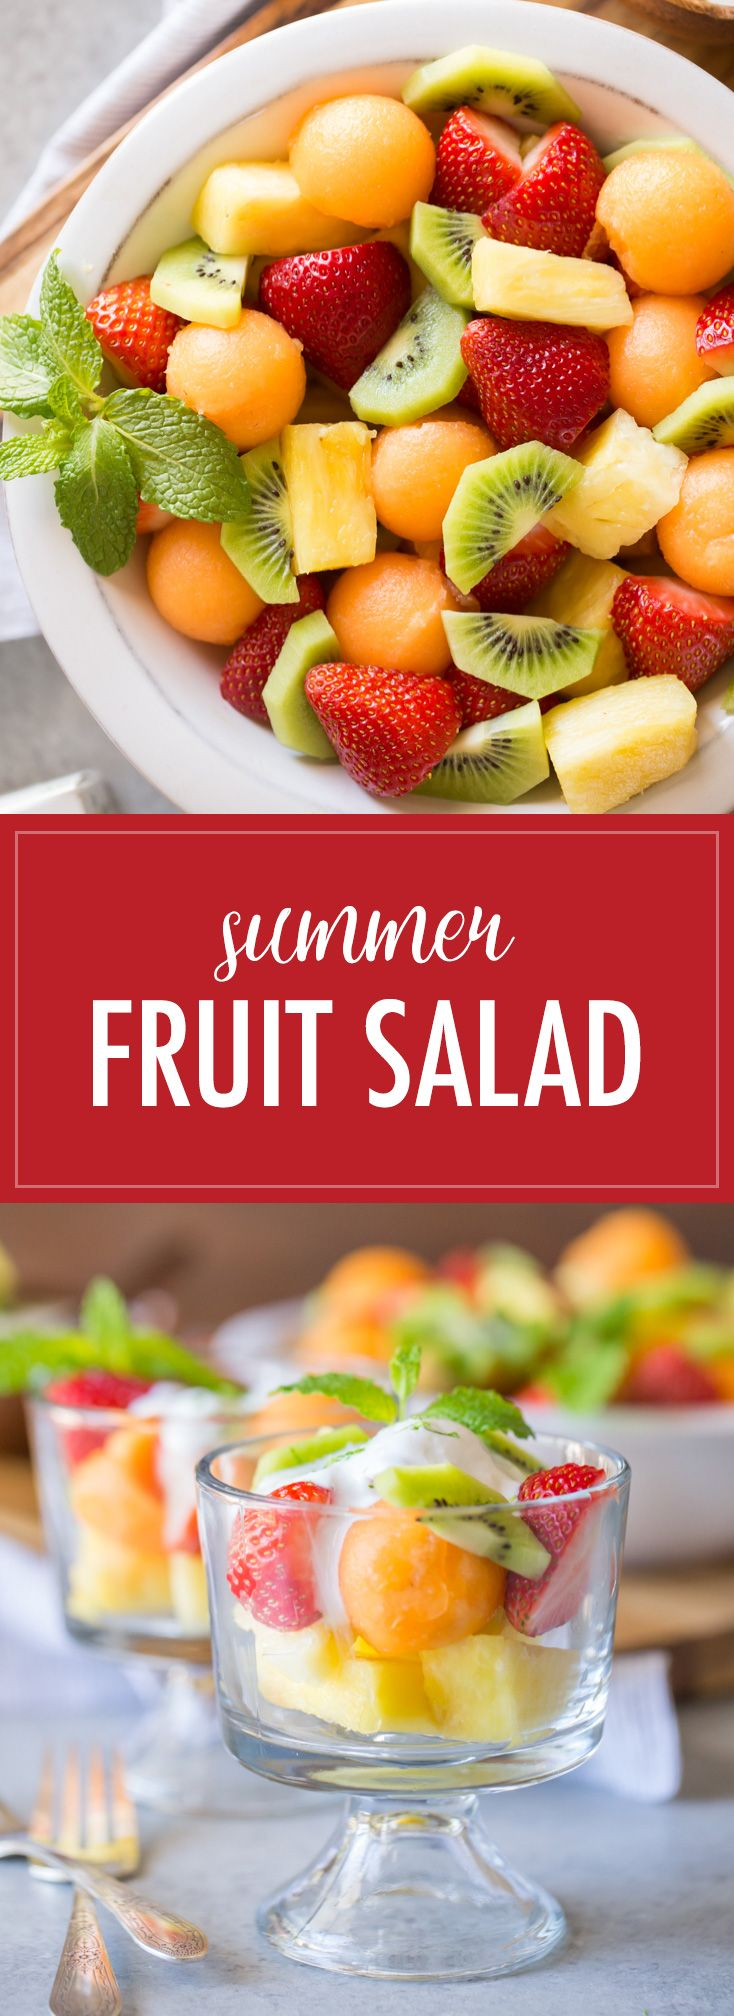 This Summer Fruit Salad is light and refreshing, with a delicious Coconut Lime Yogurt topping!